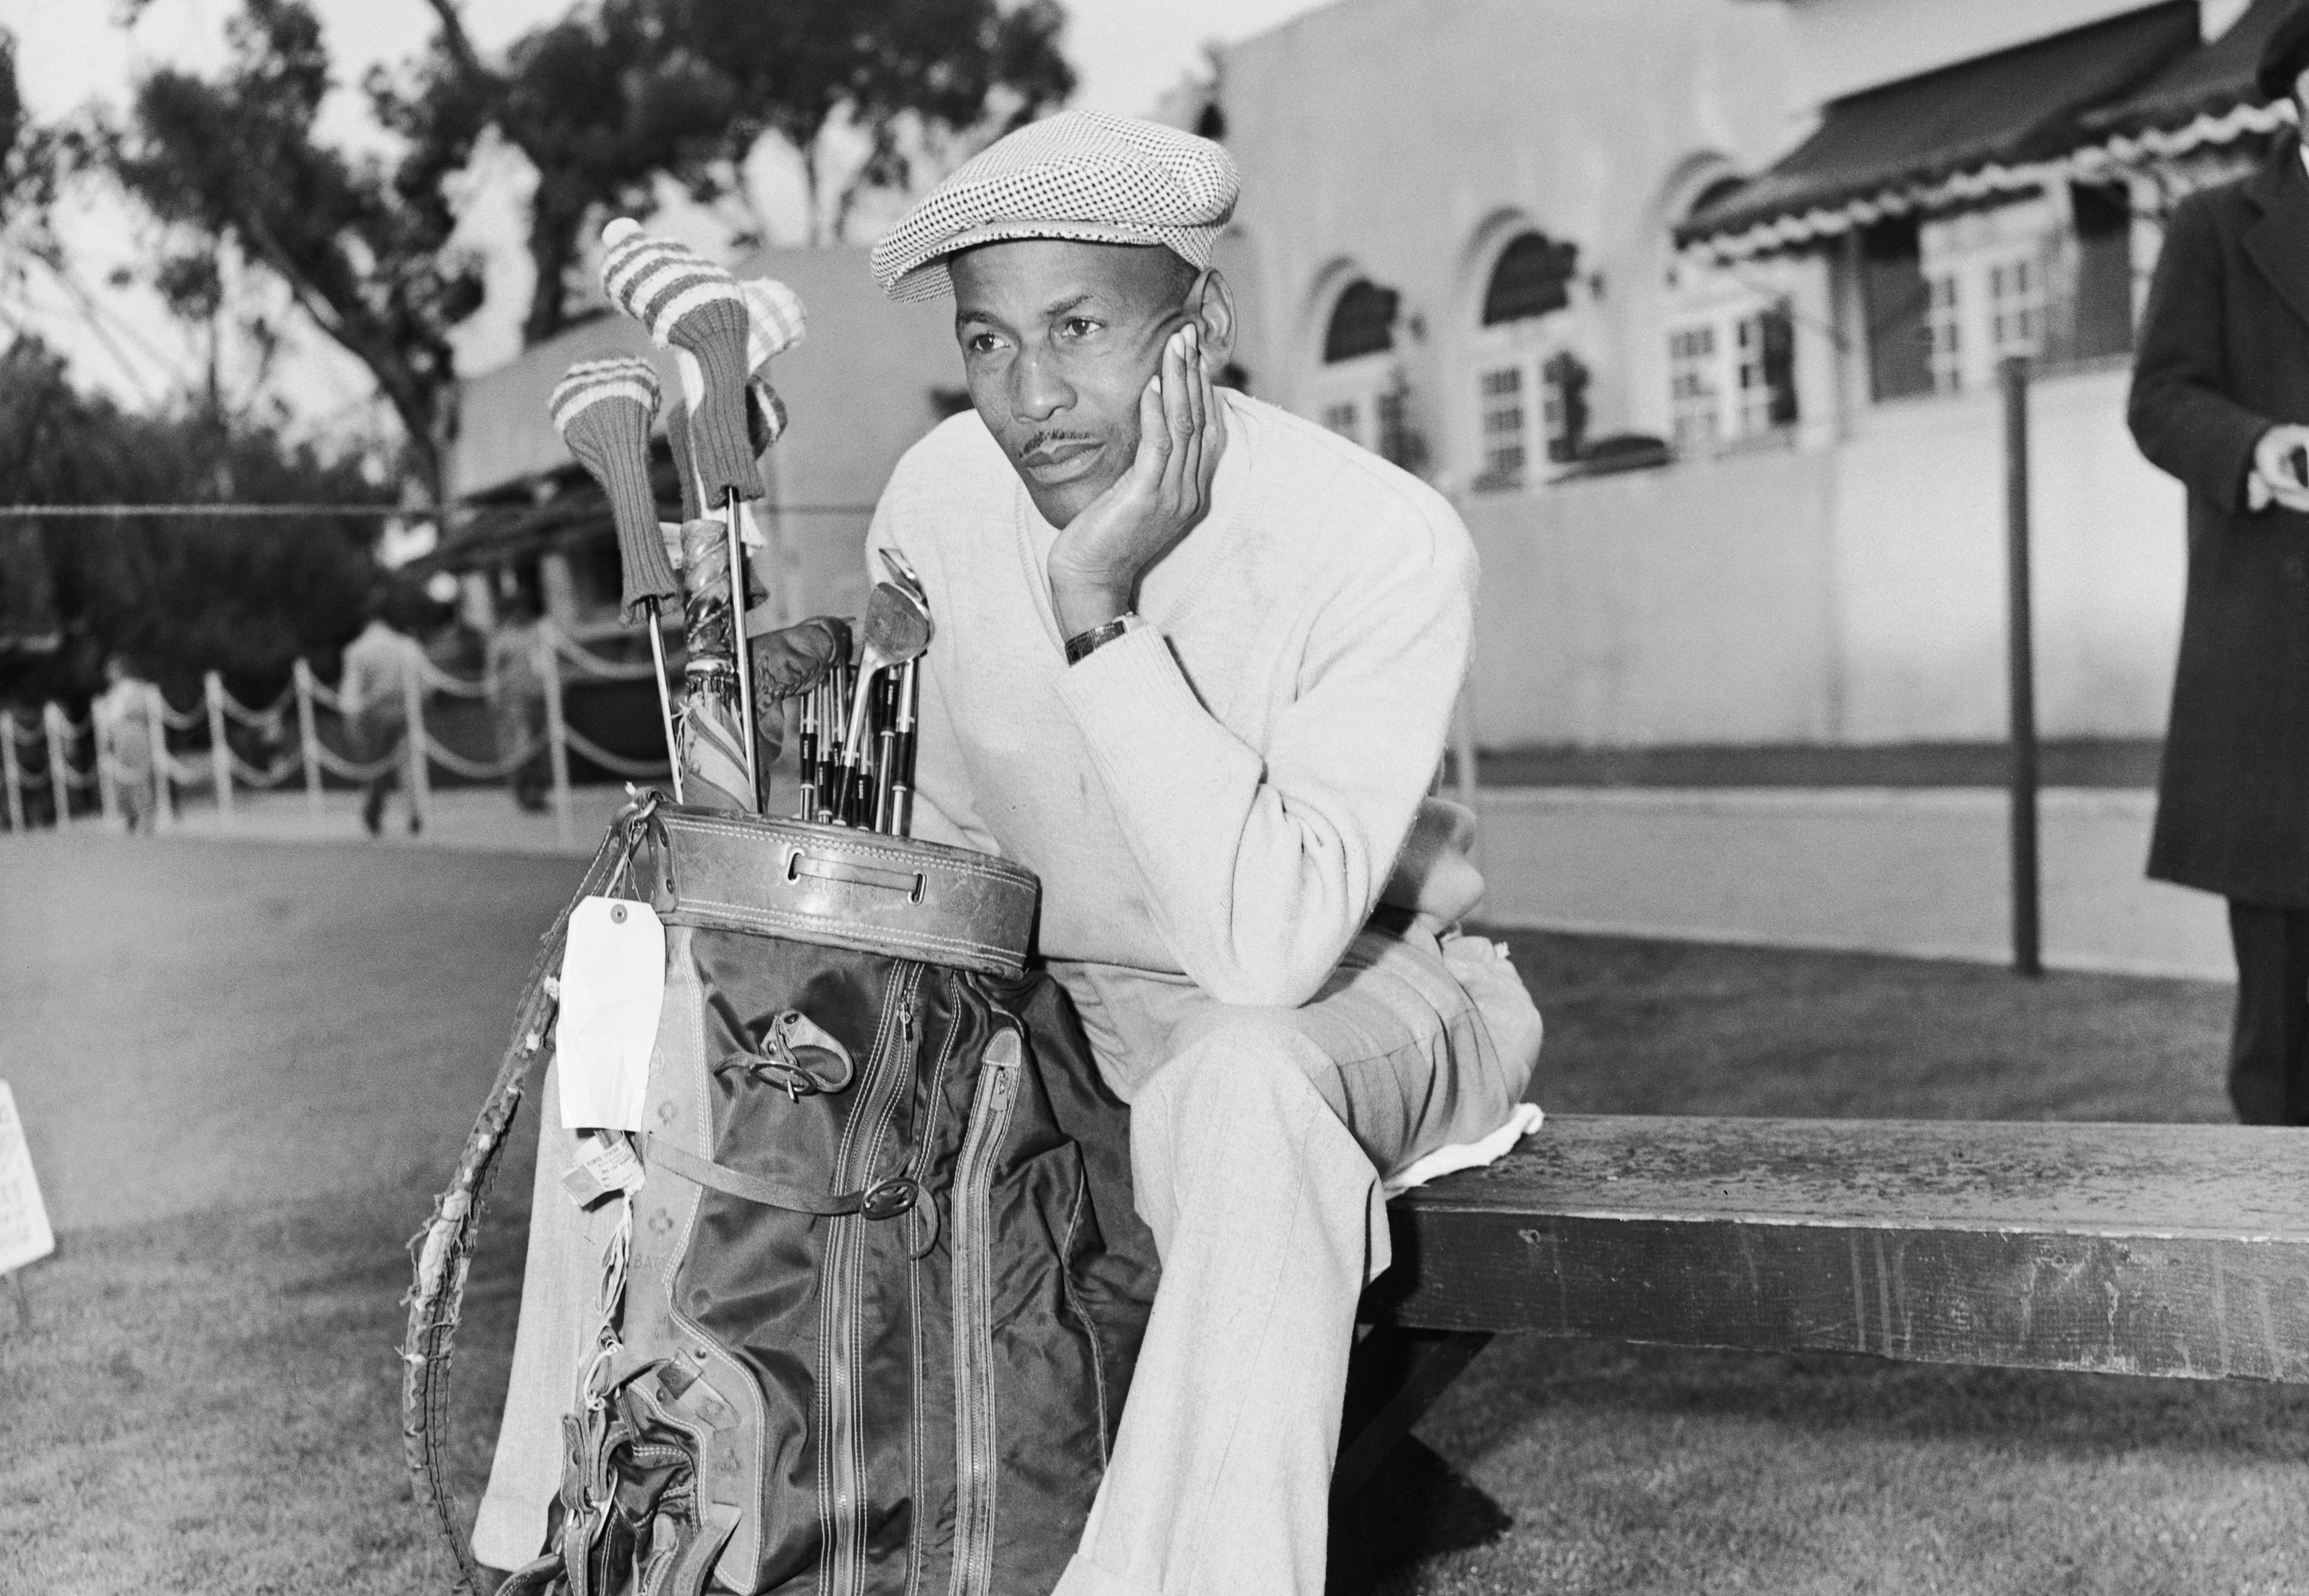 Bill Spiller sits dejectedly at the first tee as golfers start their rounds in the 1952 San Diego Open, from which the PGA banned Spiller due to his skin color.